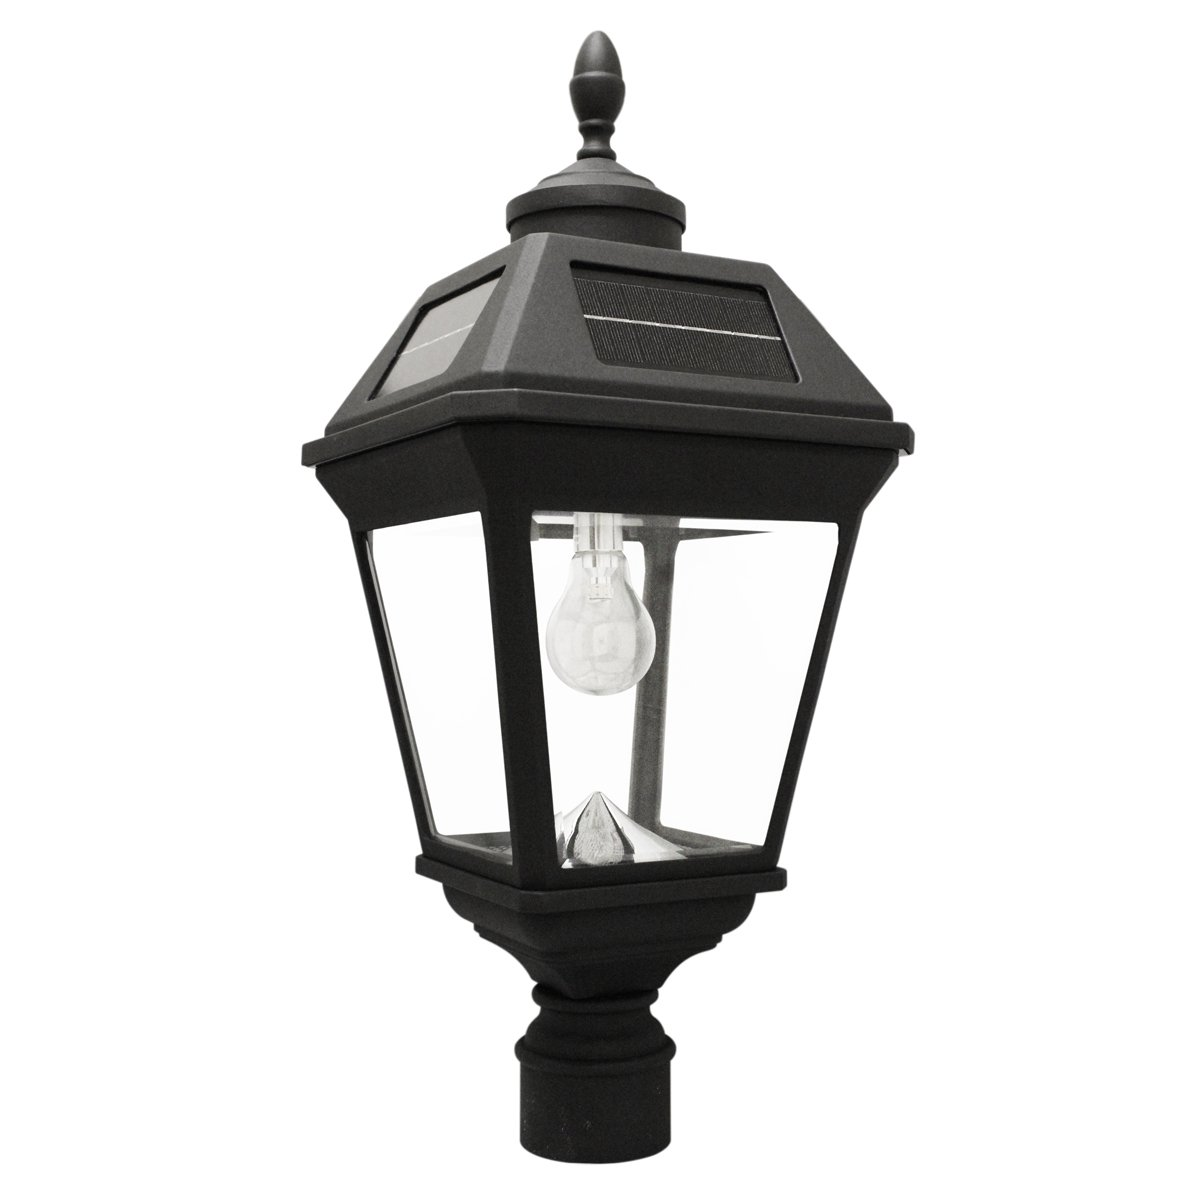 Gama Sonic Imperial Bulb Solar Lamp with GS Solar Light Bulb (3'' Fitter Mount), Black by Gama Sonic